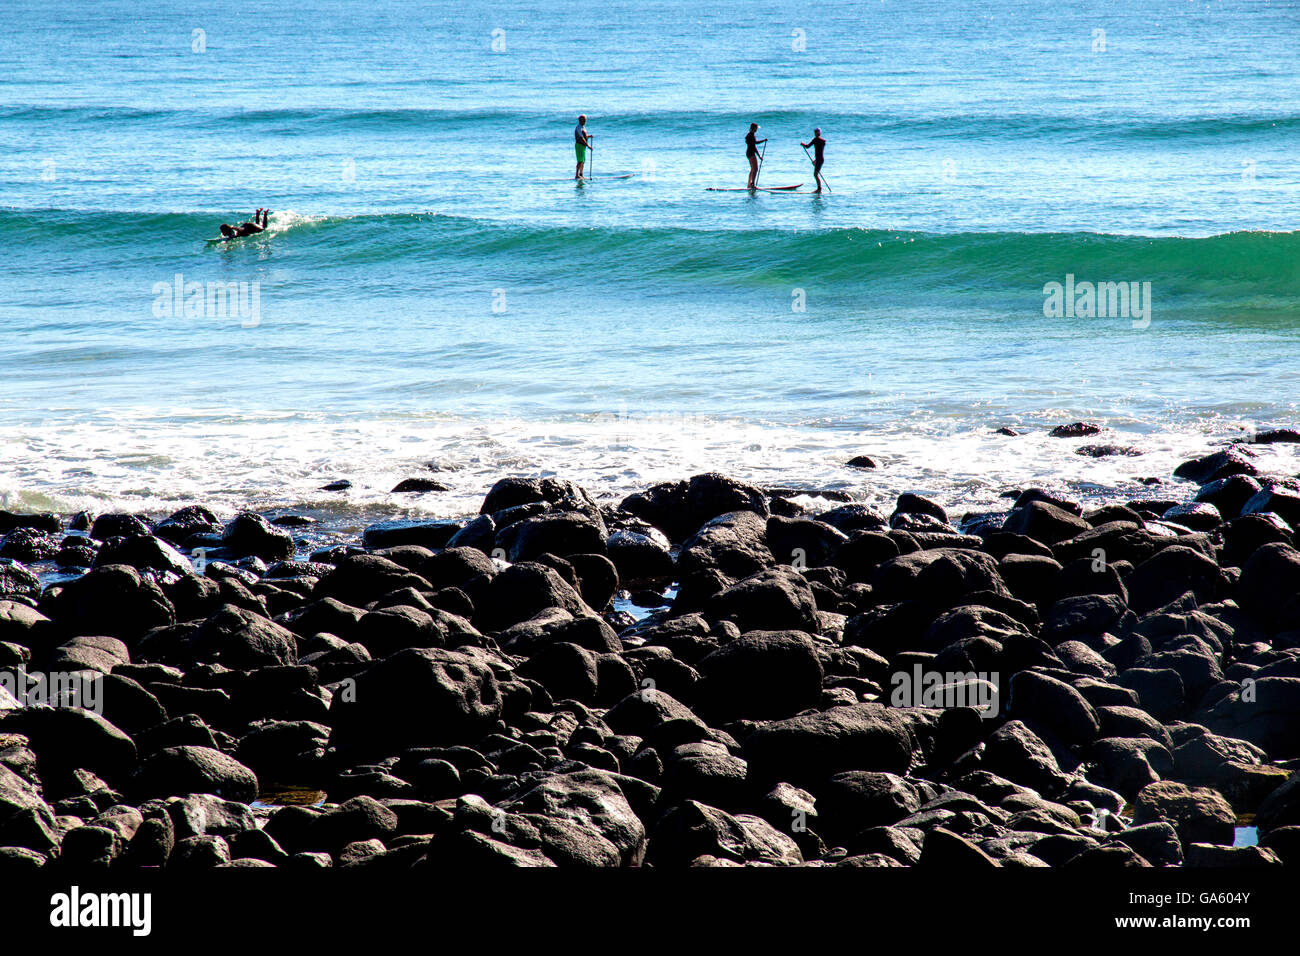 Board riders of various kinds off Burleigh Heads in Australia - Stock Image